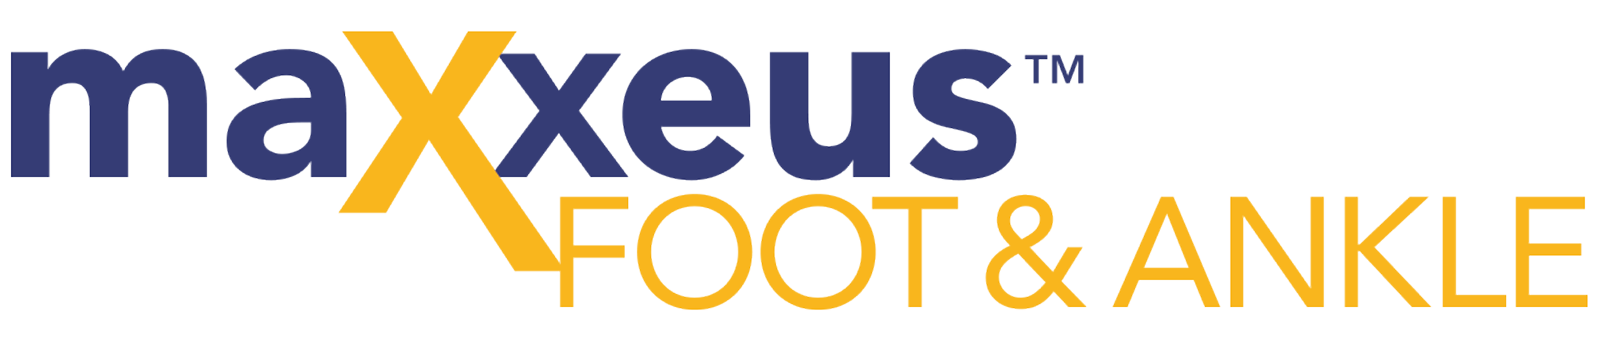 Foot&ankle_logo